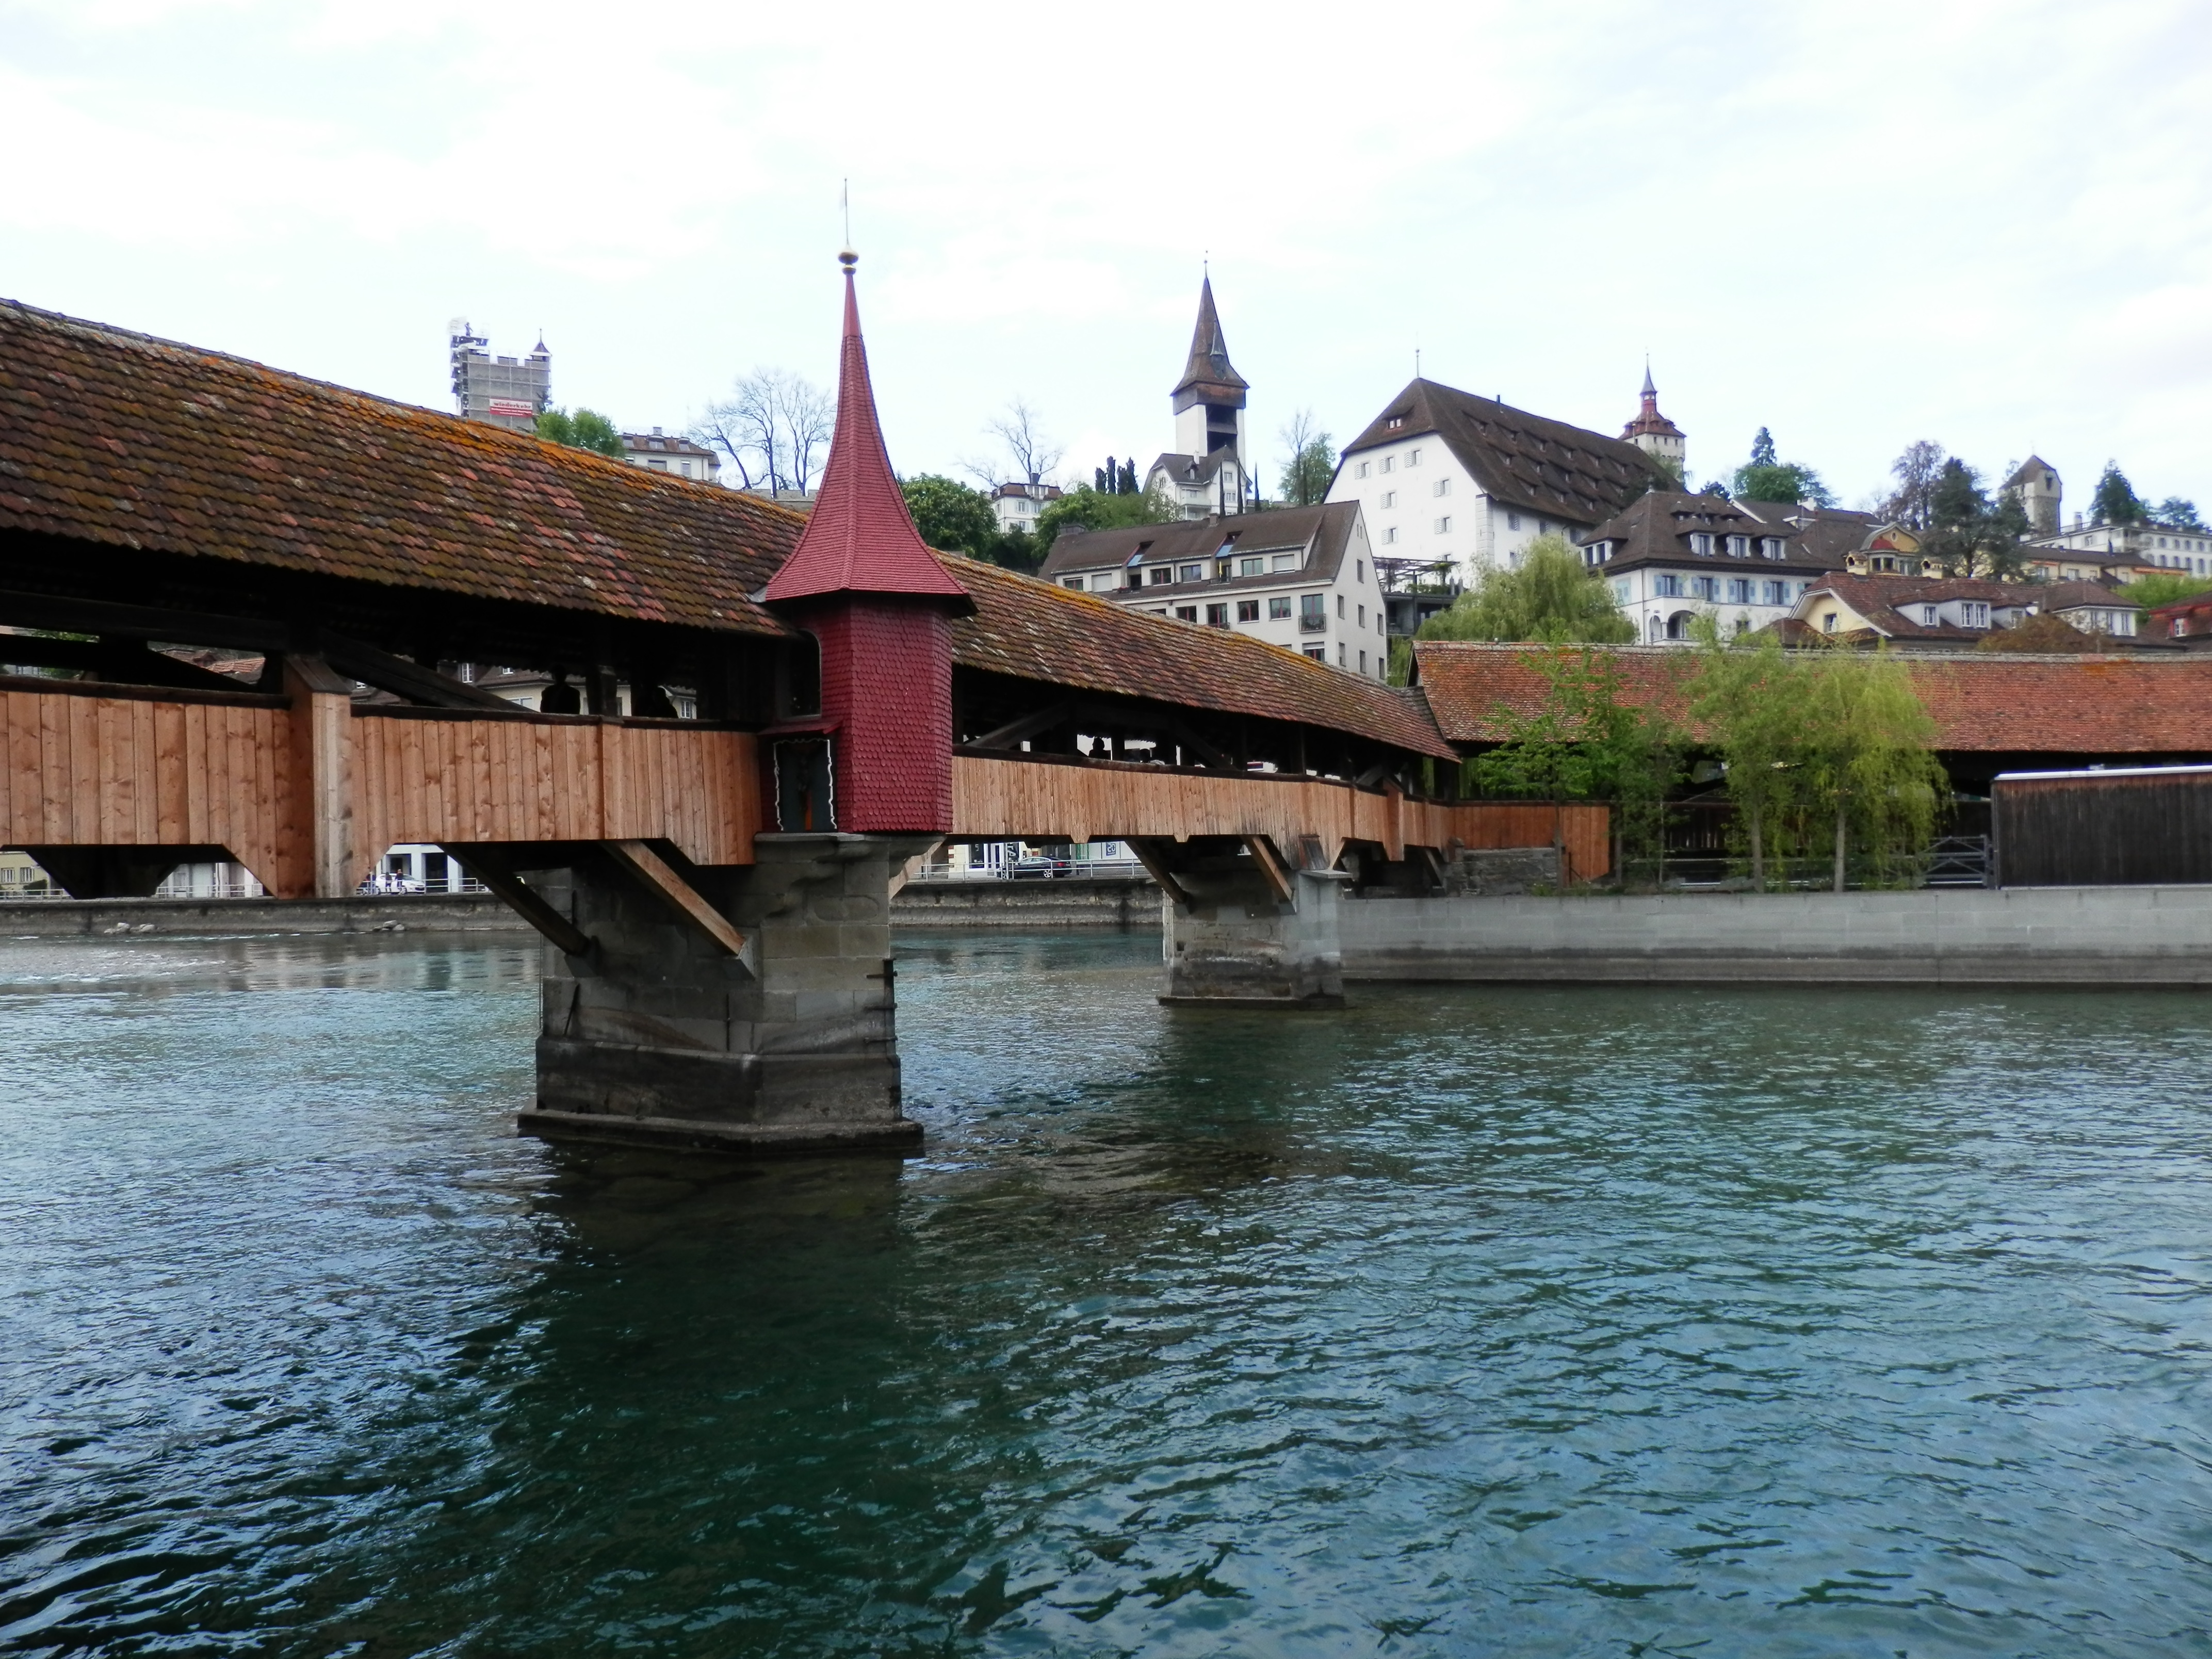 The Beautiful Structures of Luzern.